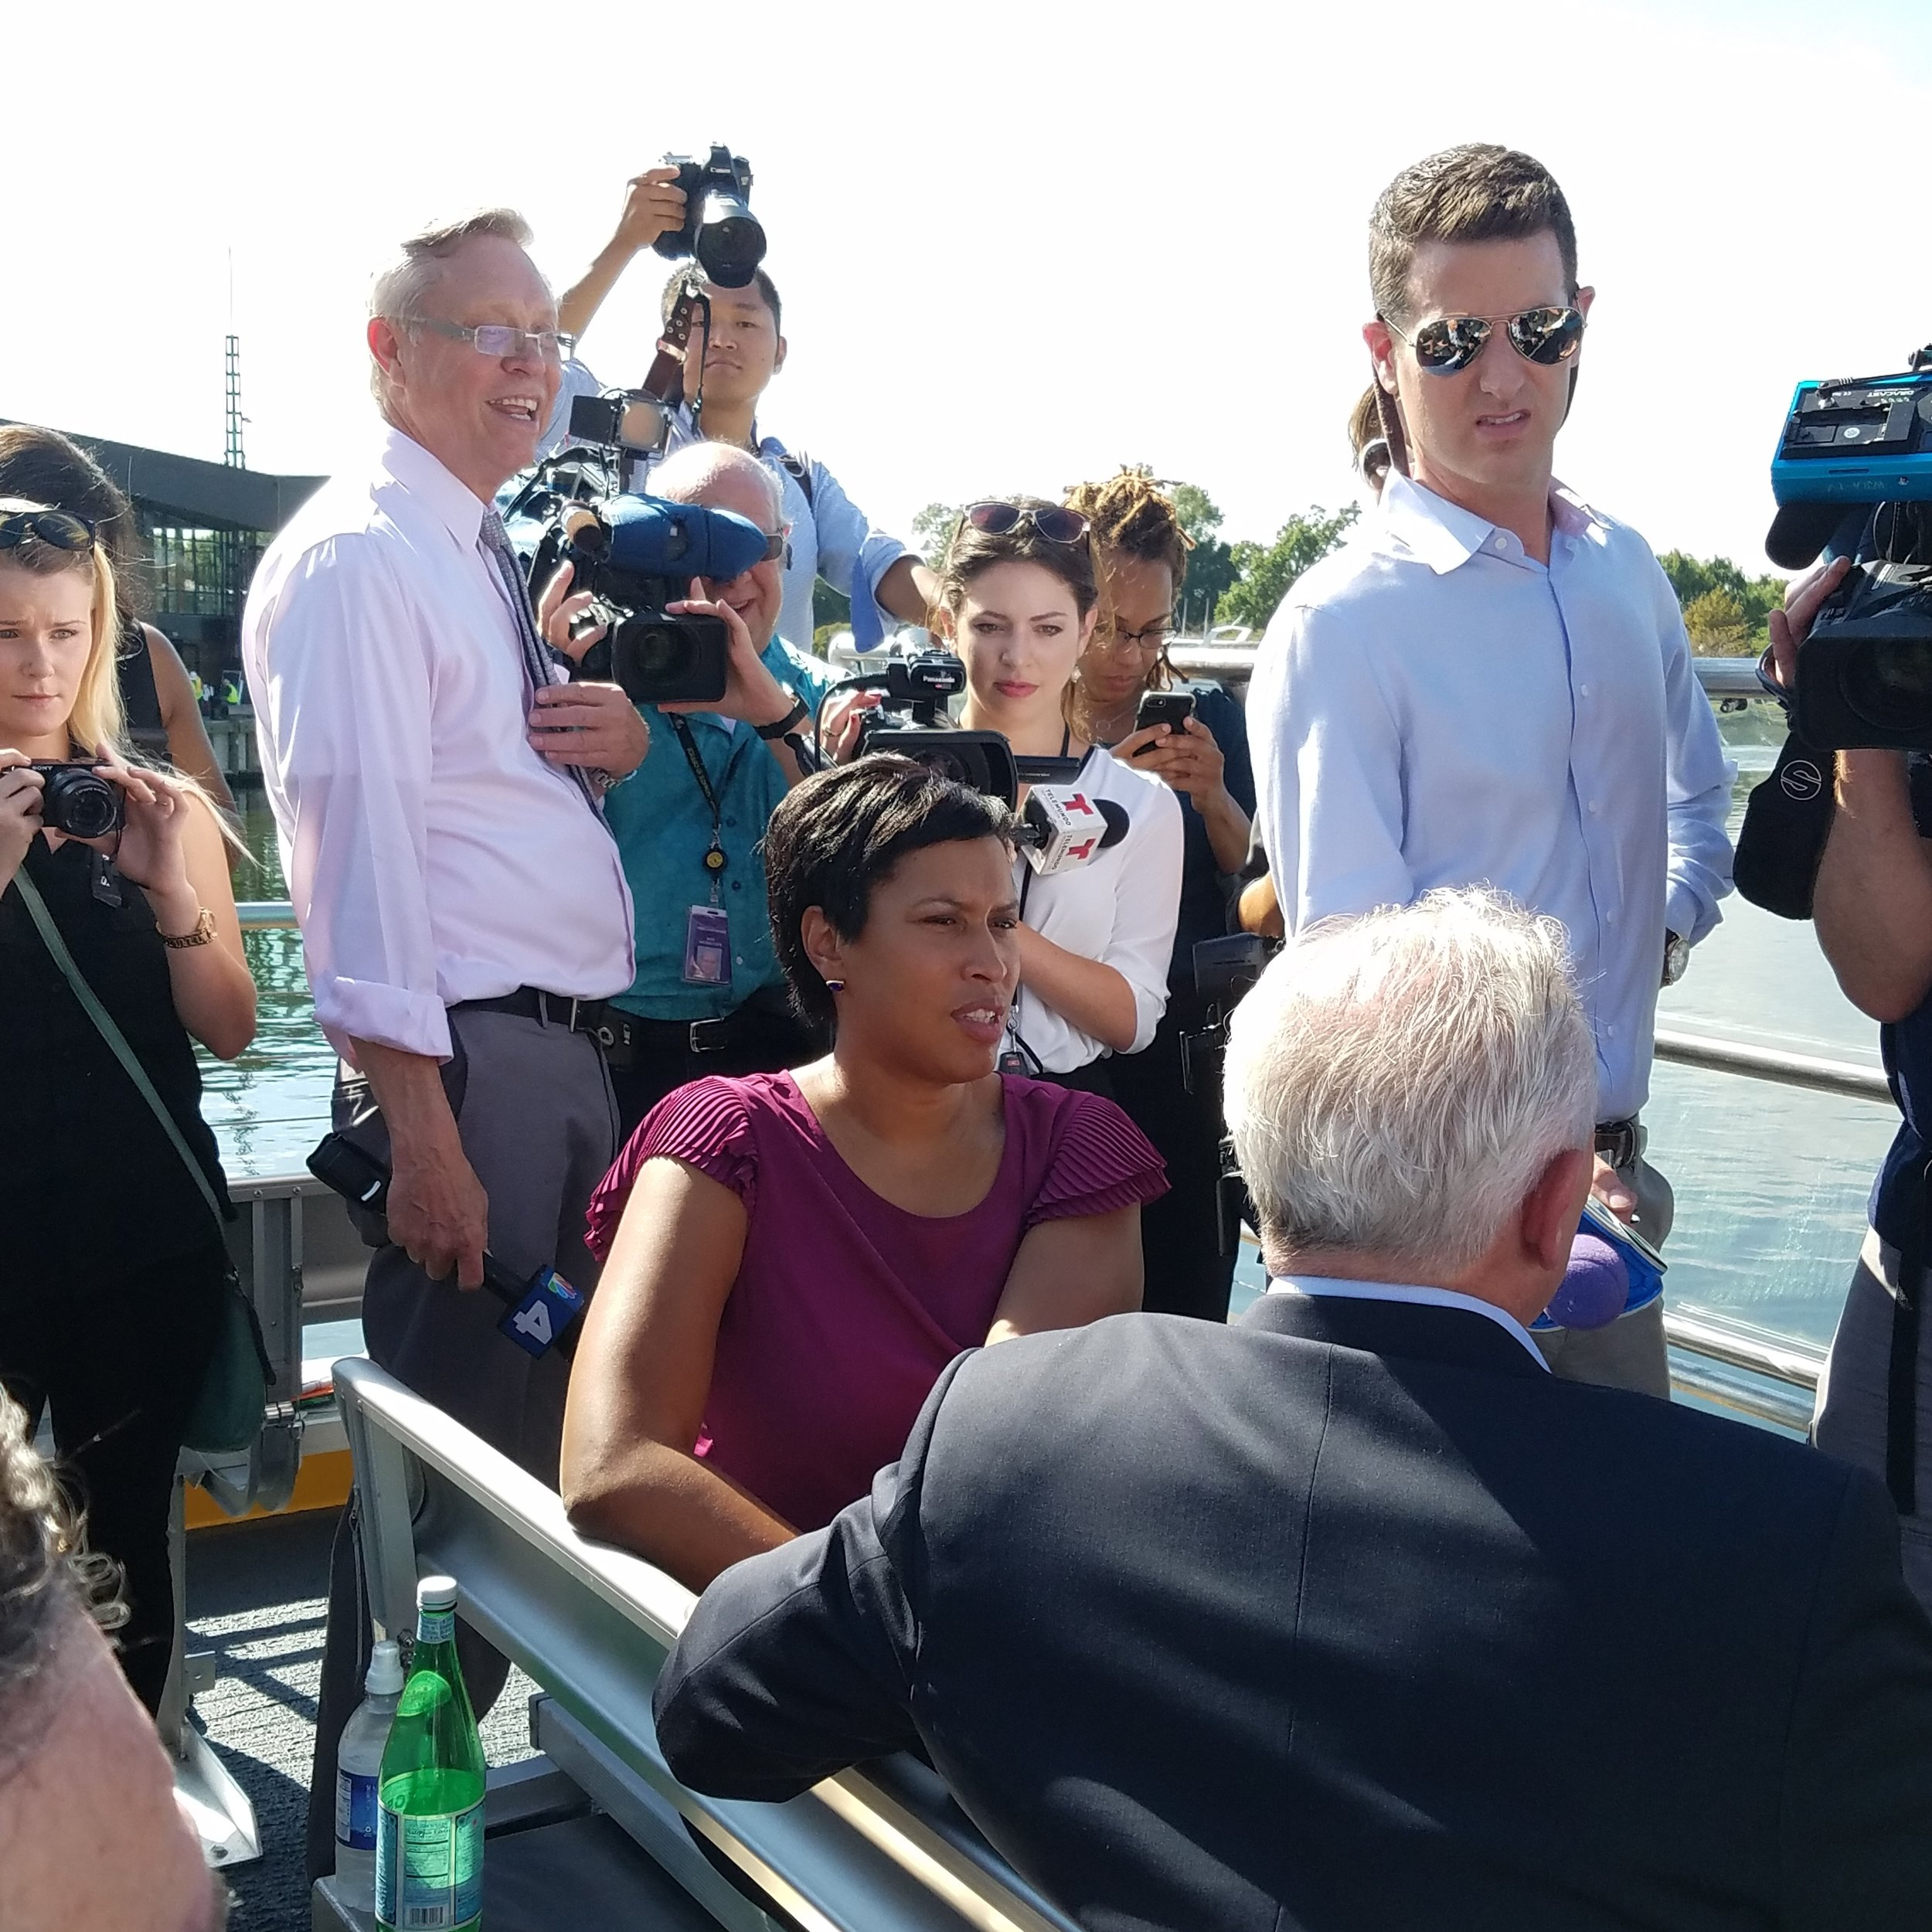 DC Mayor Muriel Bowser was on hand to talk to the press and take a ride at the launch of the Water Taxi service from the new transportation pier at The Wharf.